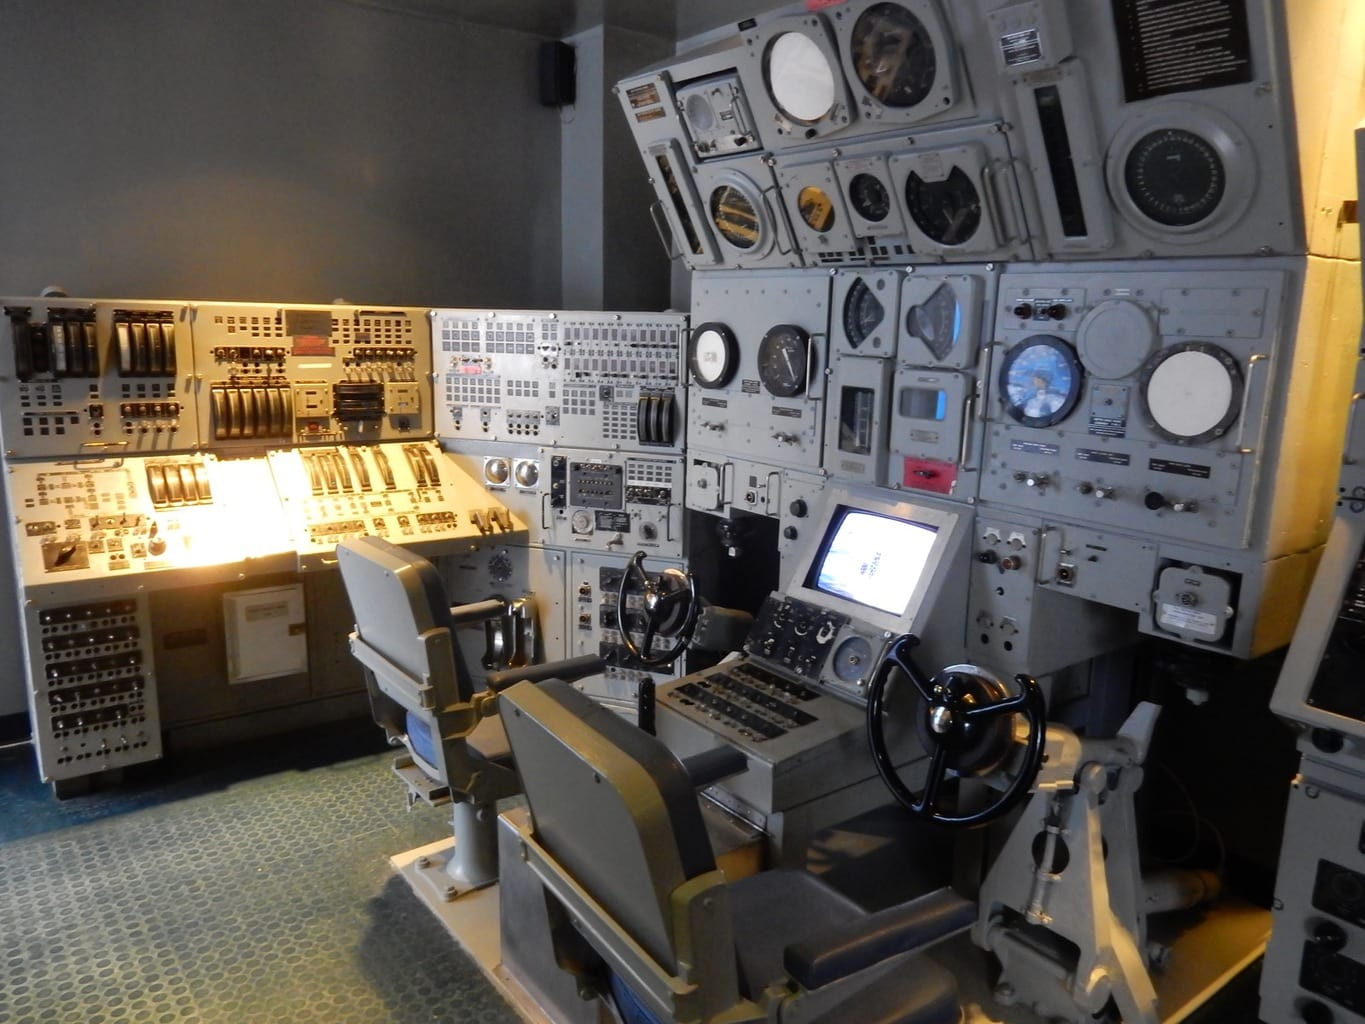 Ship Control Panel from USS Billfish at Submarine Force Museum, Groton CT